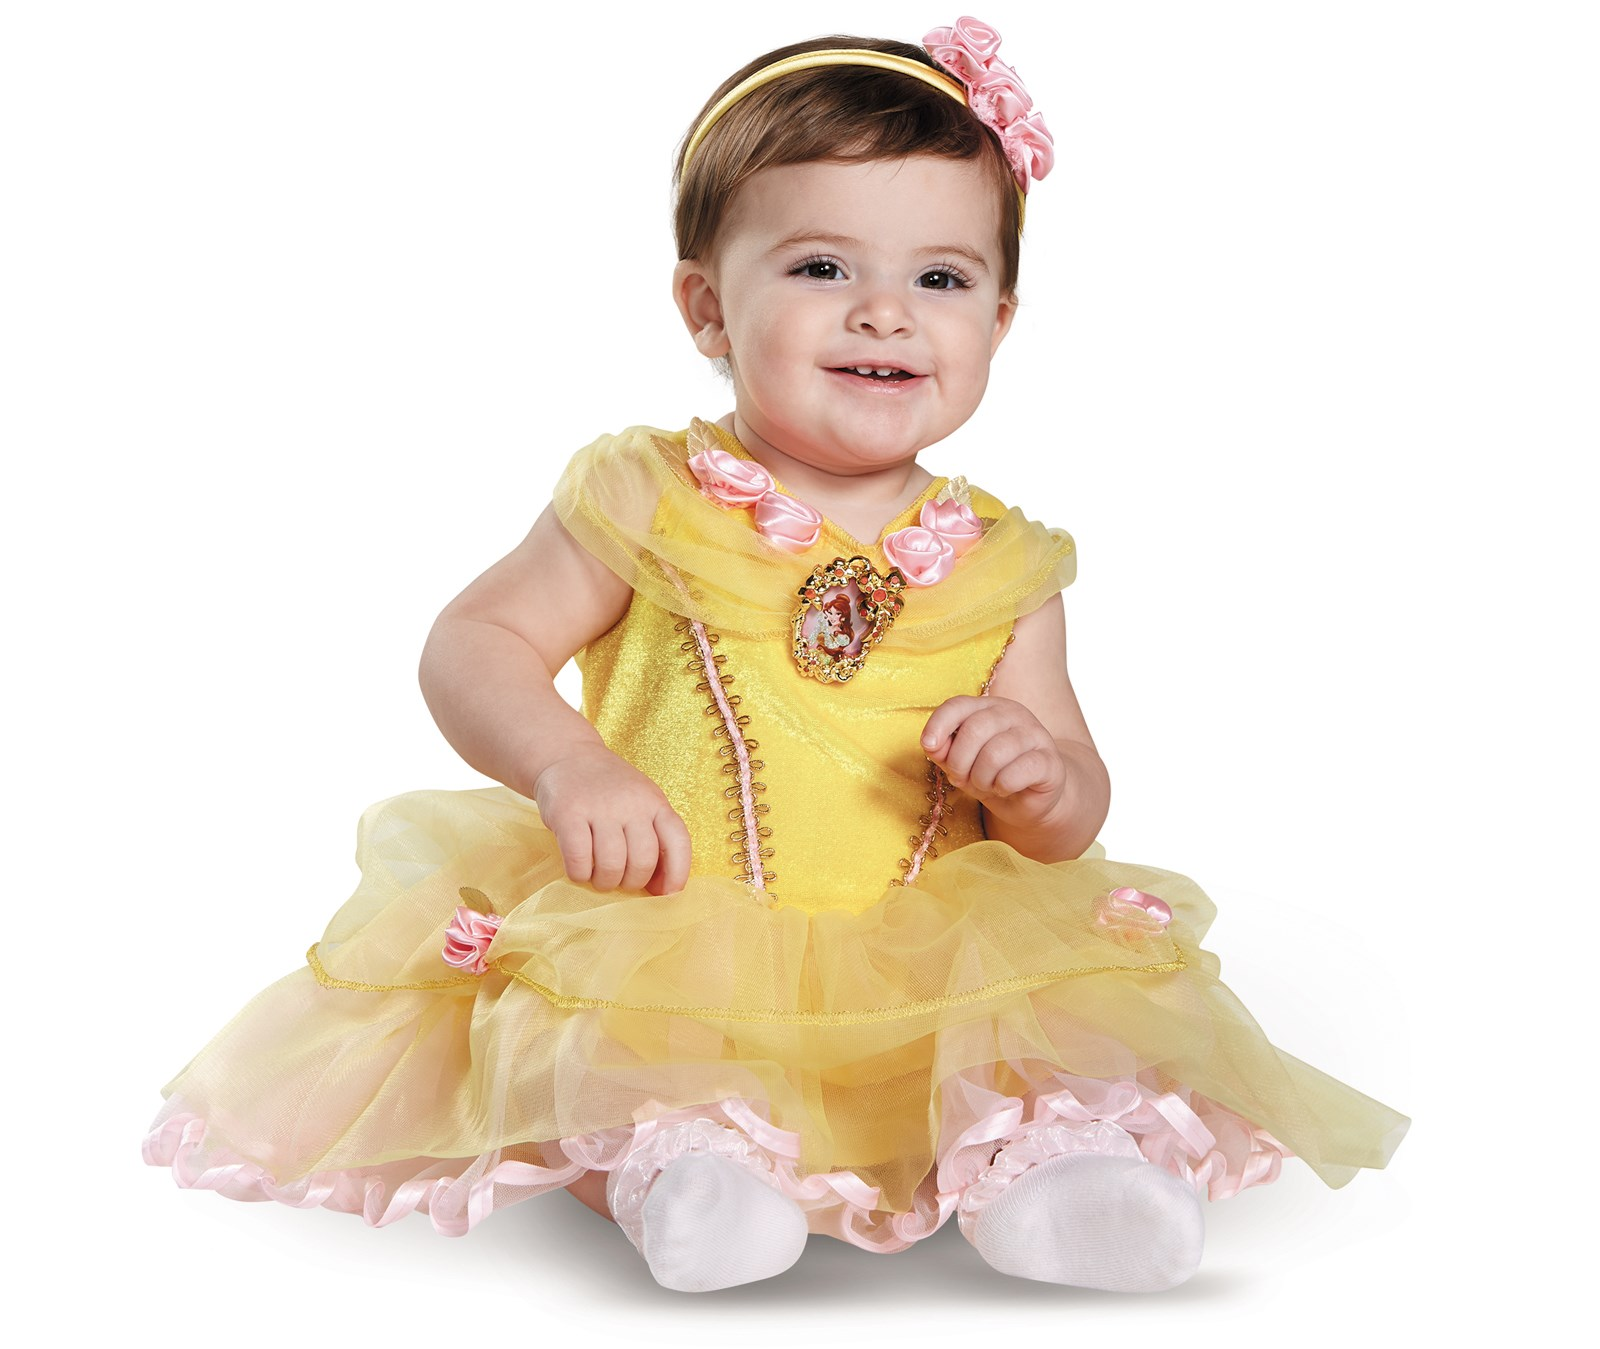 Disney Beauty and the Beast - Belle Infant Costume 12-18 Months